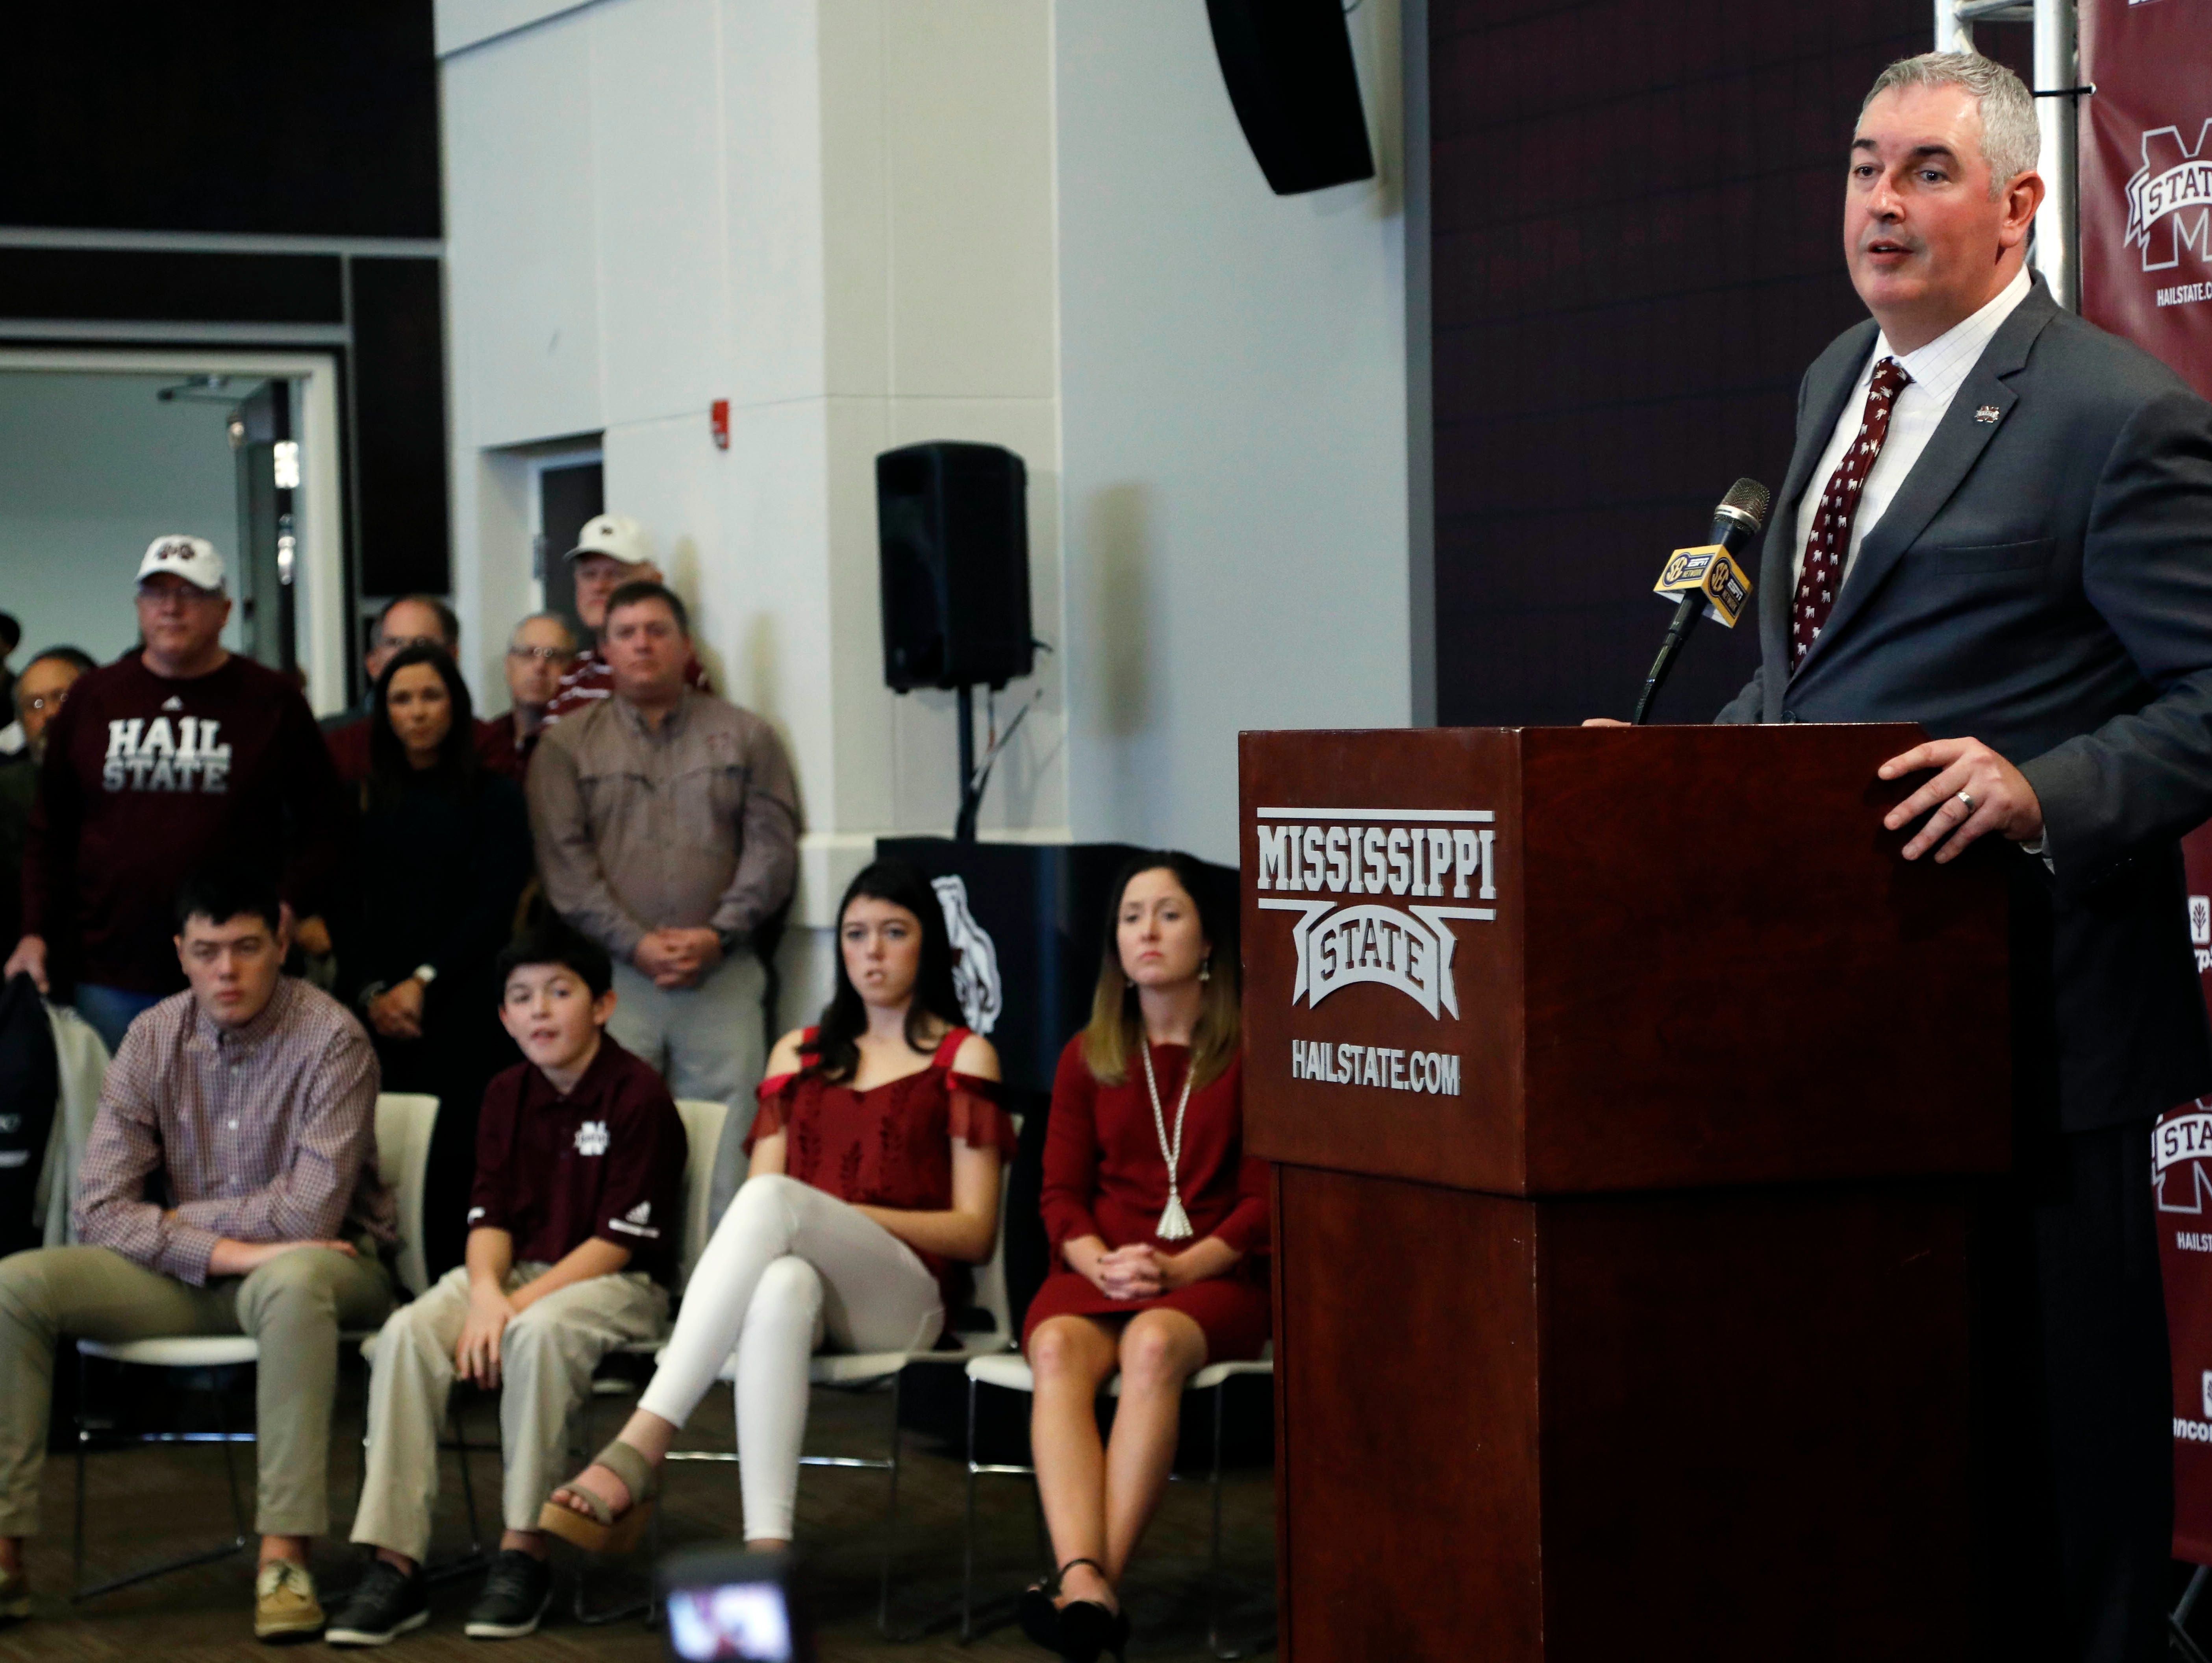 """New Mississippi State football coach Joe Moorhead says the """"foundation is laid"""" for football success at the school and he looks forward to trying to lead the Bulldogs to the top of the Southeastern Conference at his official introduction by the university to football team supporters and reporters, Thursday, Nov. 30, 2017, in Starkville, Miss. Family members attending the news conference, were from left, his children, Mason, 15, Donovan, 10, Kyra, 17, and his wife Jennifer. (AP Photo/Rogelio V. Solis)"""